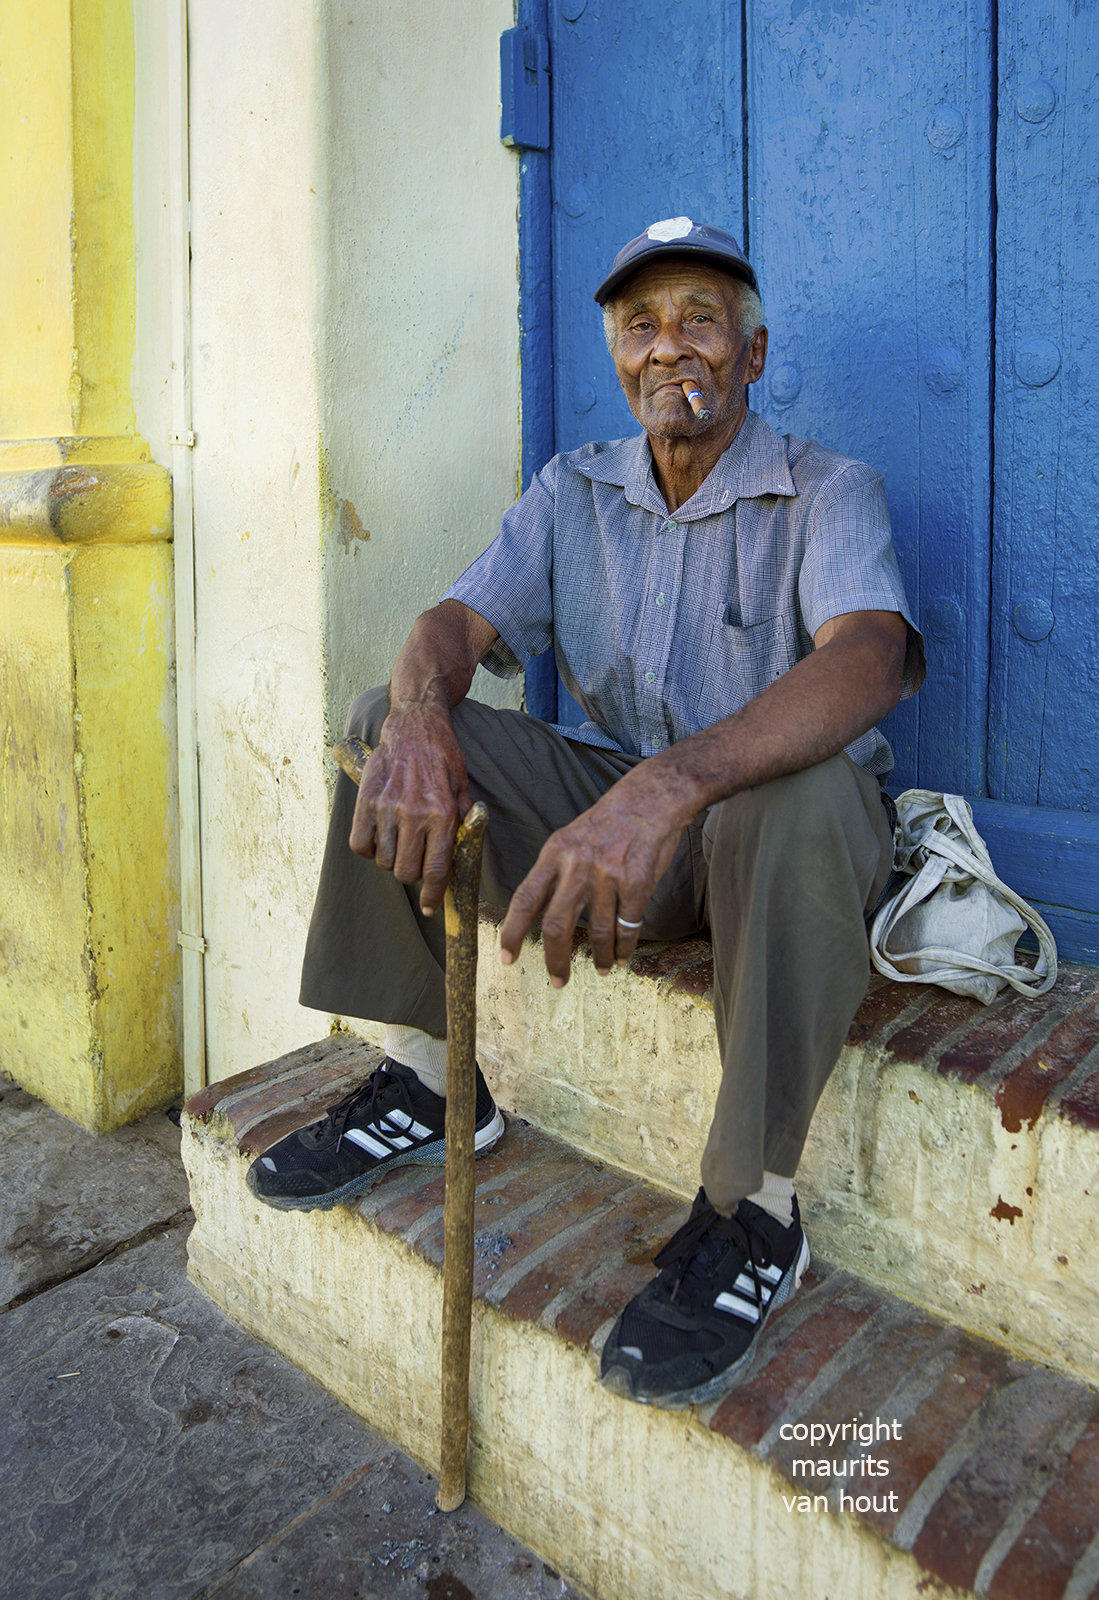 portrait of a man, Trinidad Cuba, by Dutch photographer Maurits van Hout